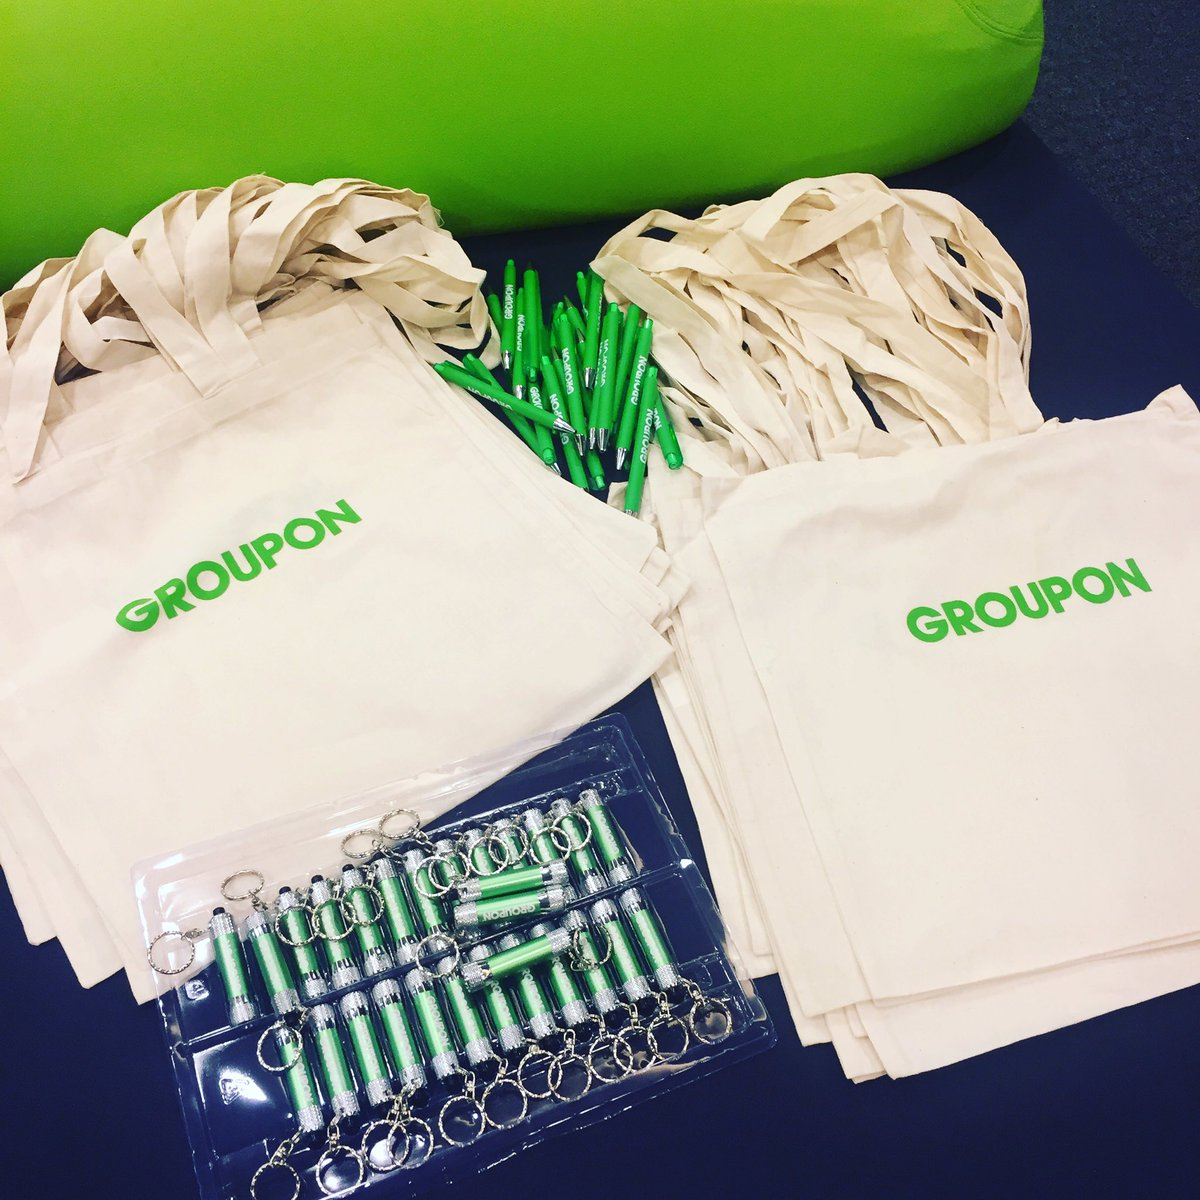 Groupon emea groupontalent twitter swag freestuff tech engineers groupon dublinpicitter5d5cjluekh buycottarizona Image collections